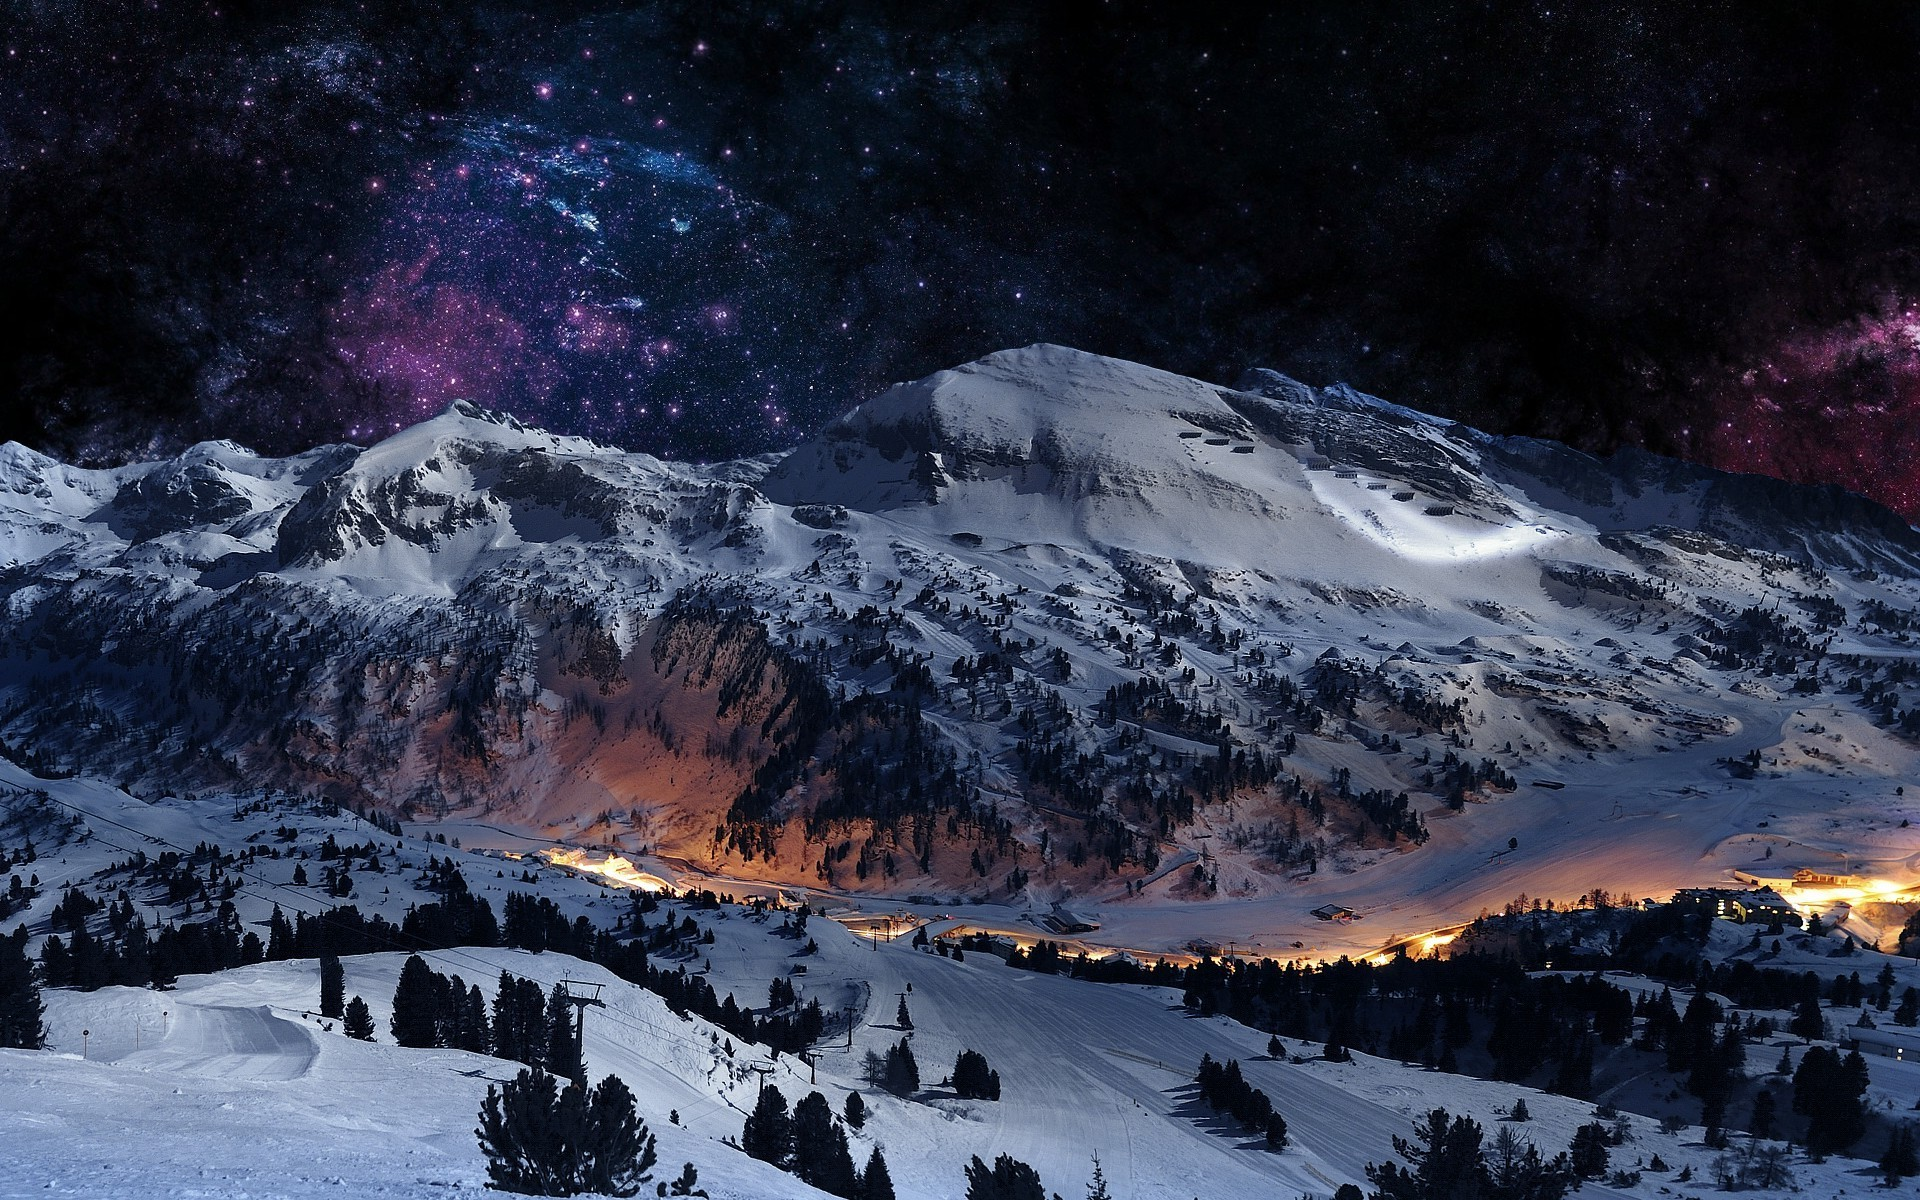 Ski resort Wallpaper 2663 1920x1200